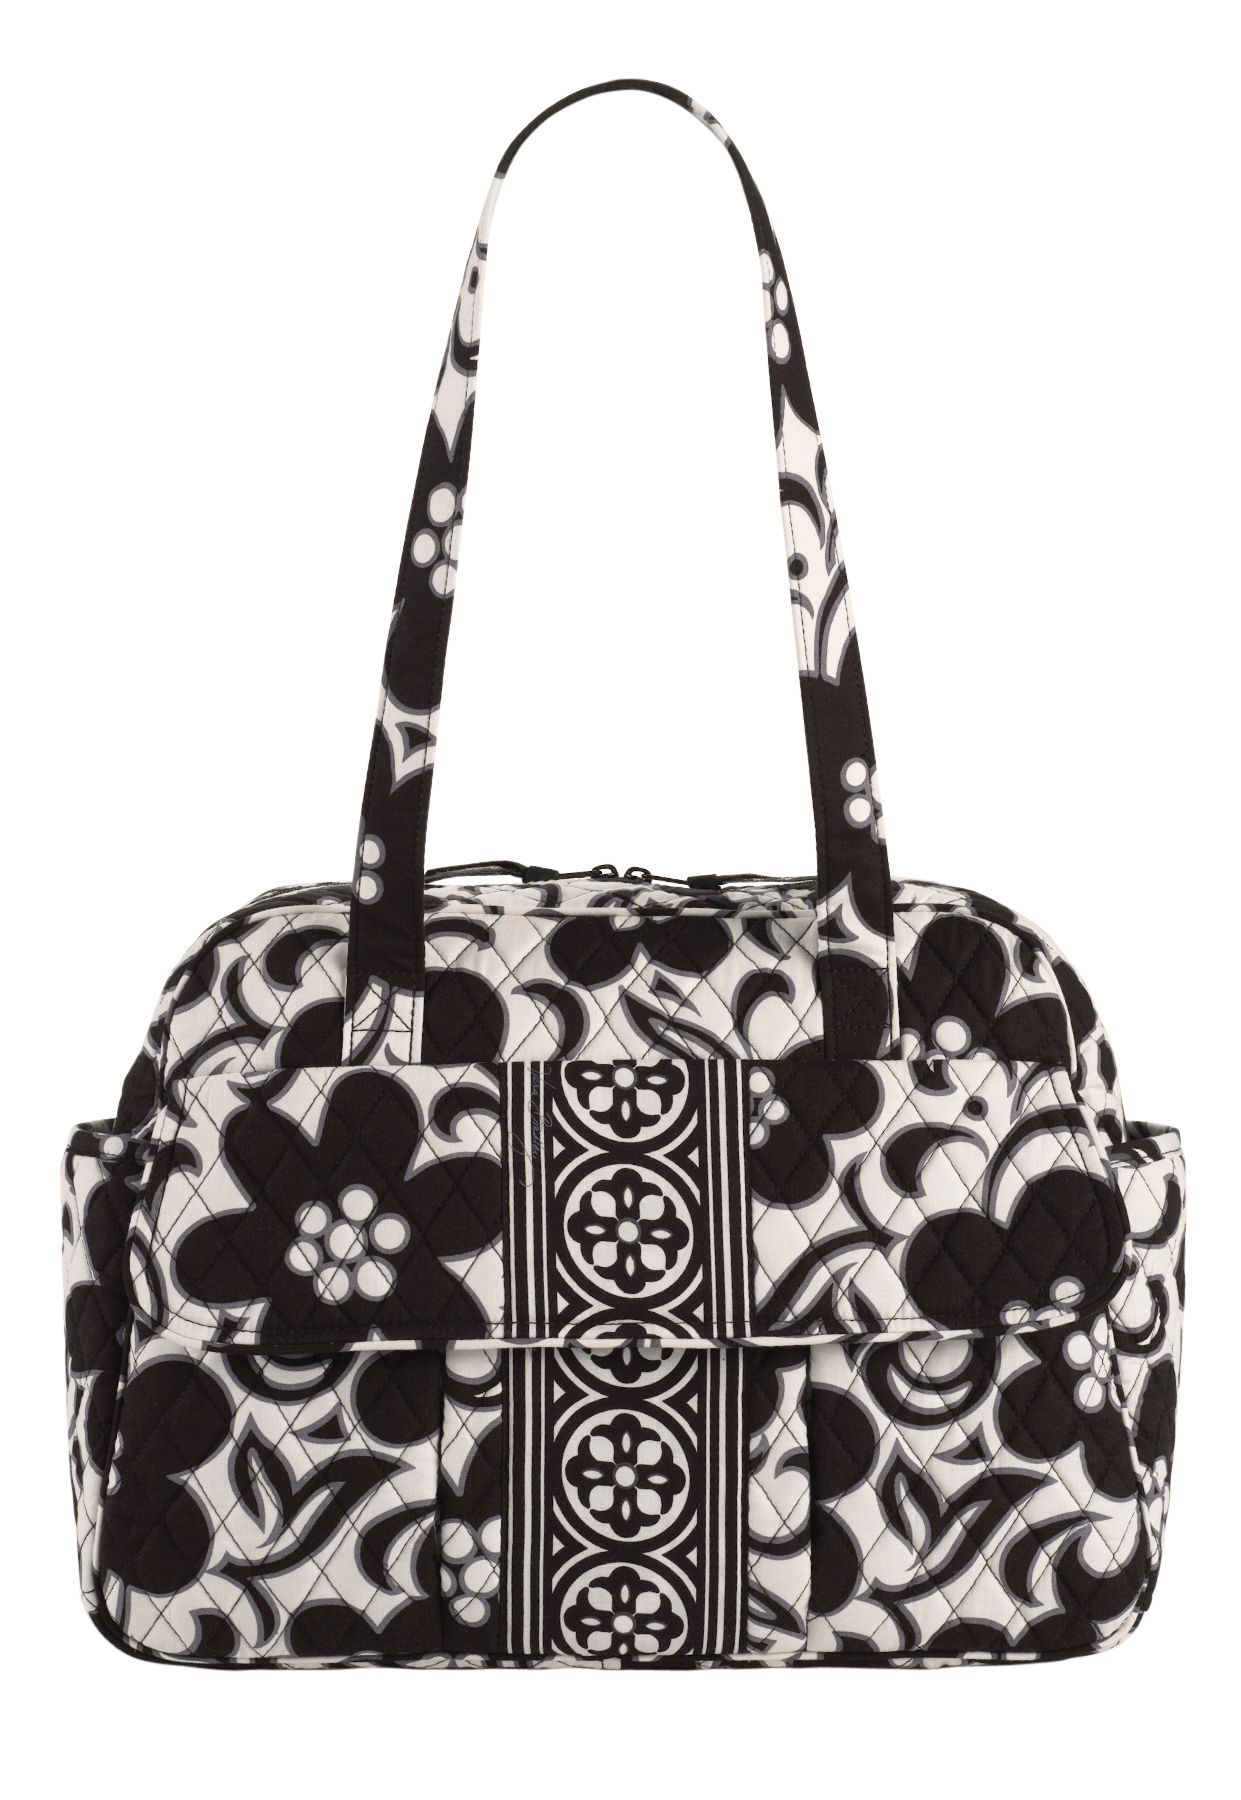 diaper bags vera bradley outlet vera bradley handbags vera bradley outlet diaper bags vera. Black Bedroom Furniture Sets. Home Design Ideas